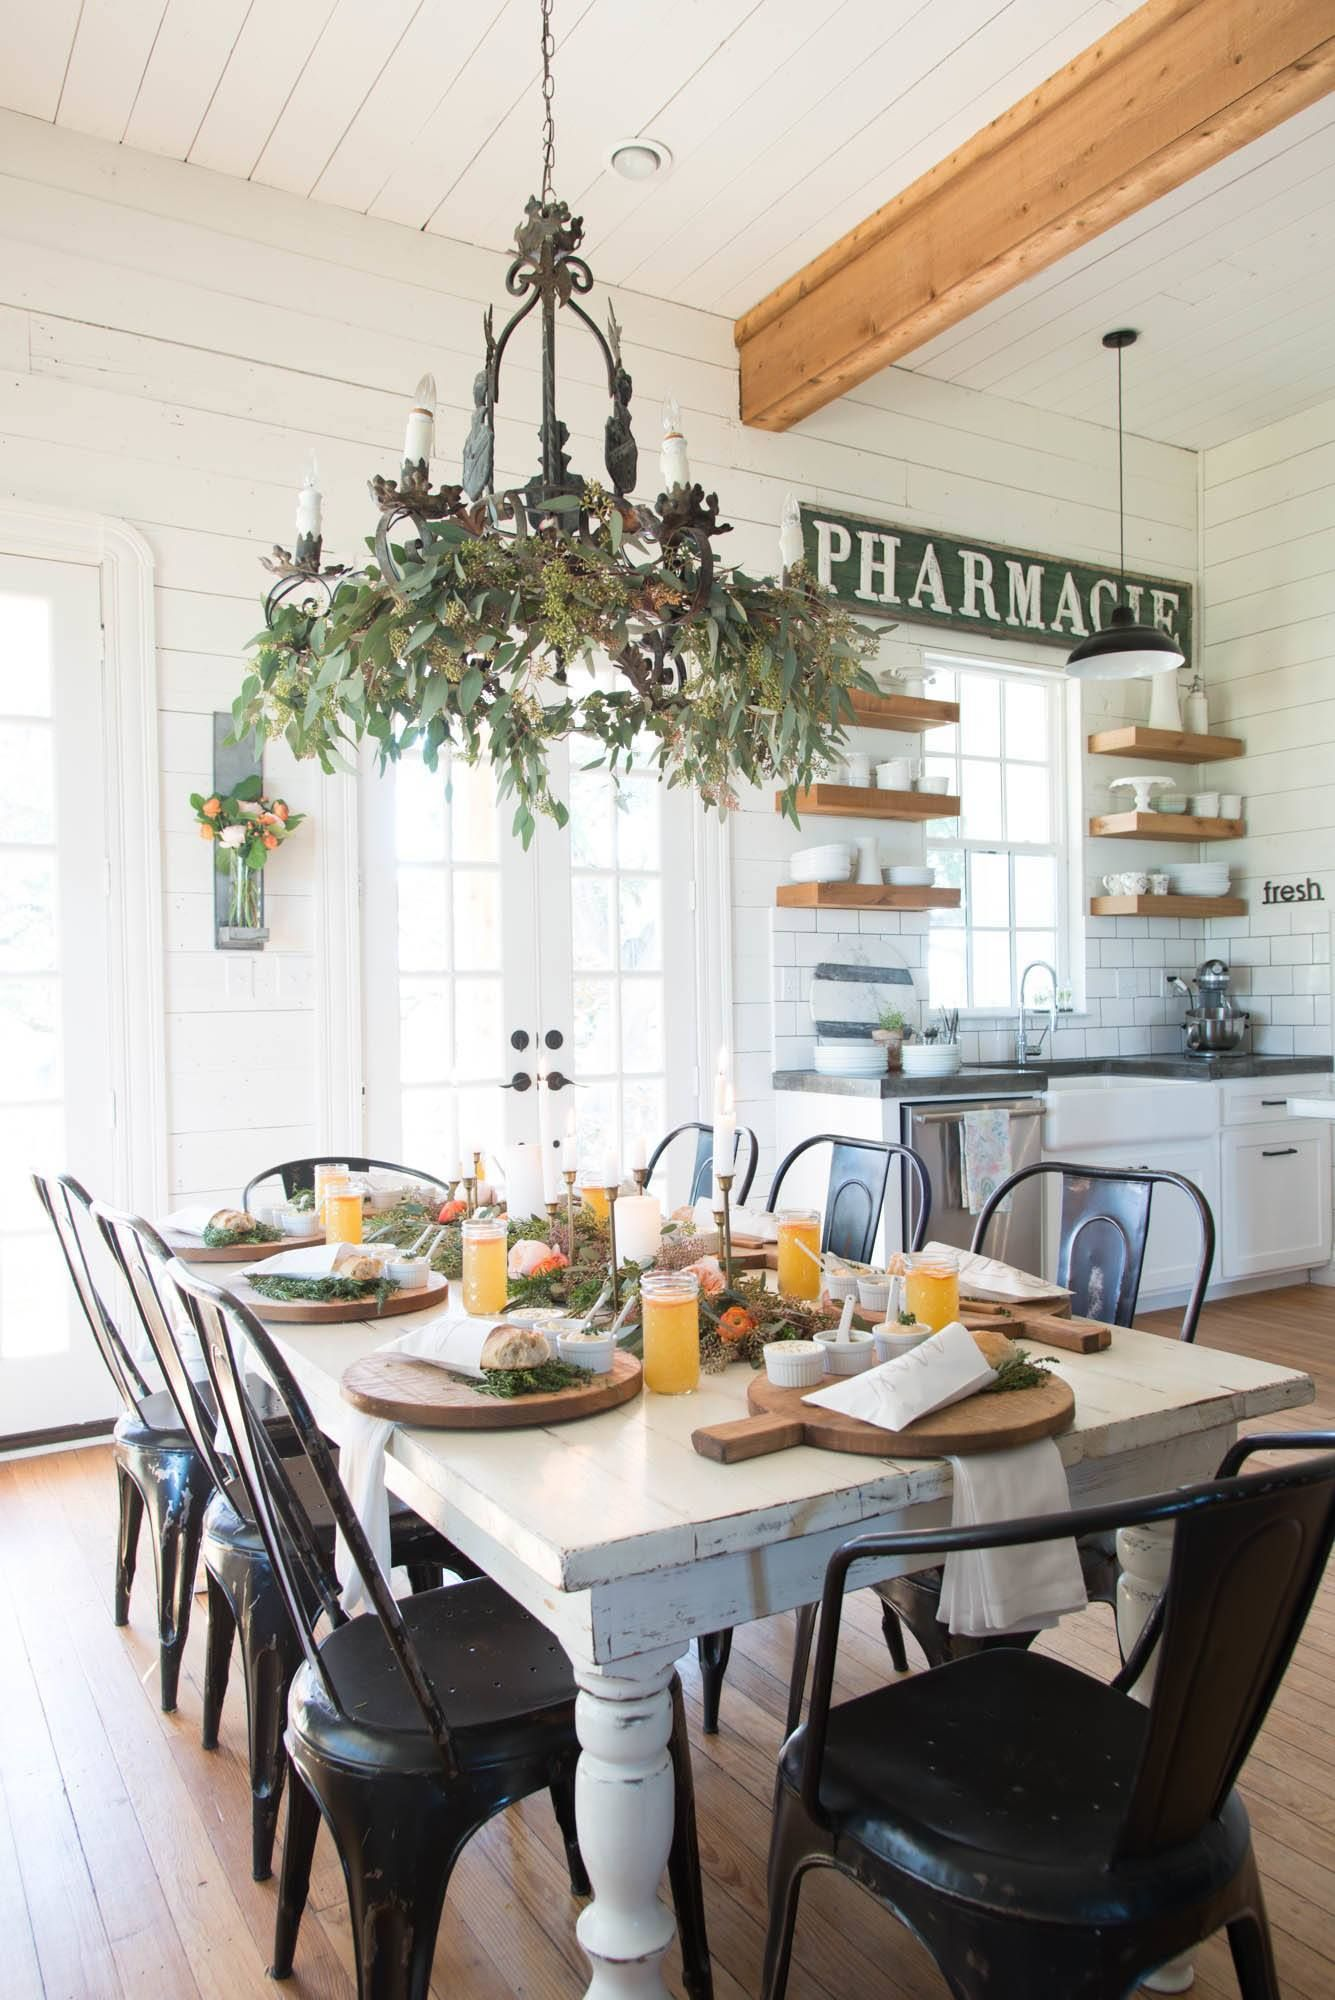 A Winter Dinner Party | Joanna gaines, Beams and Ceiling